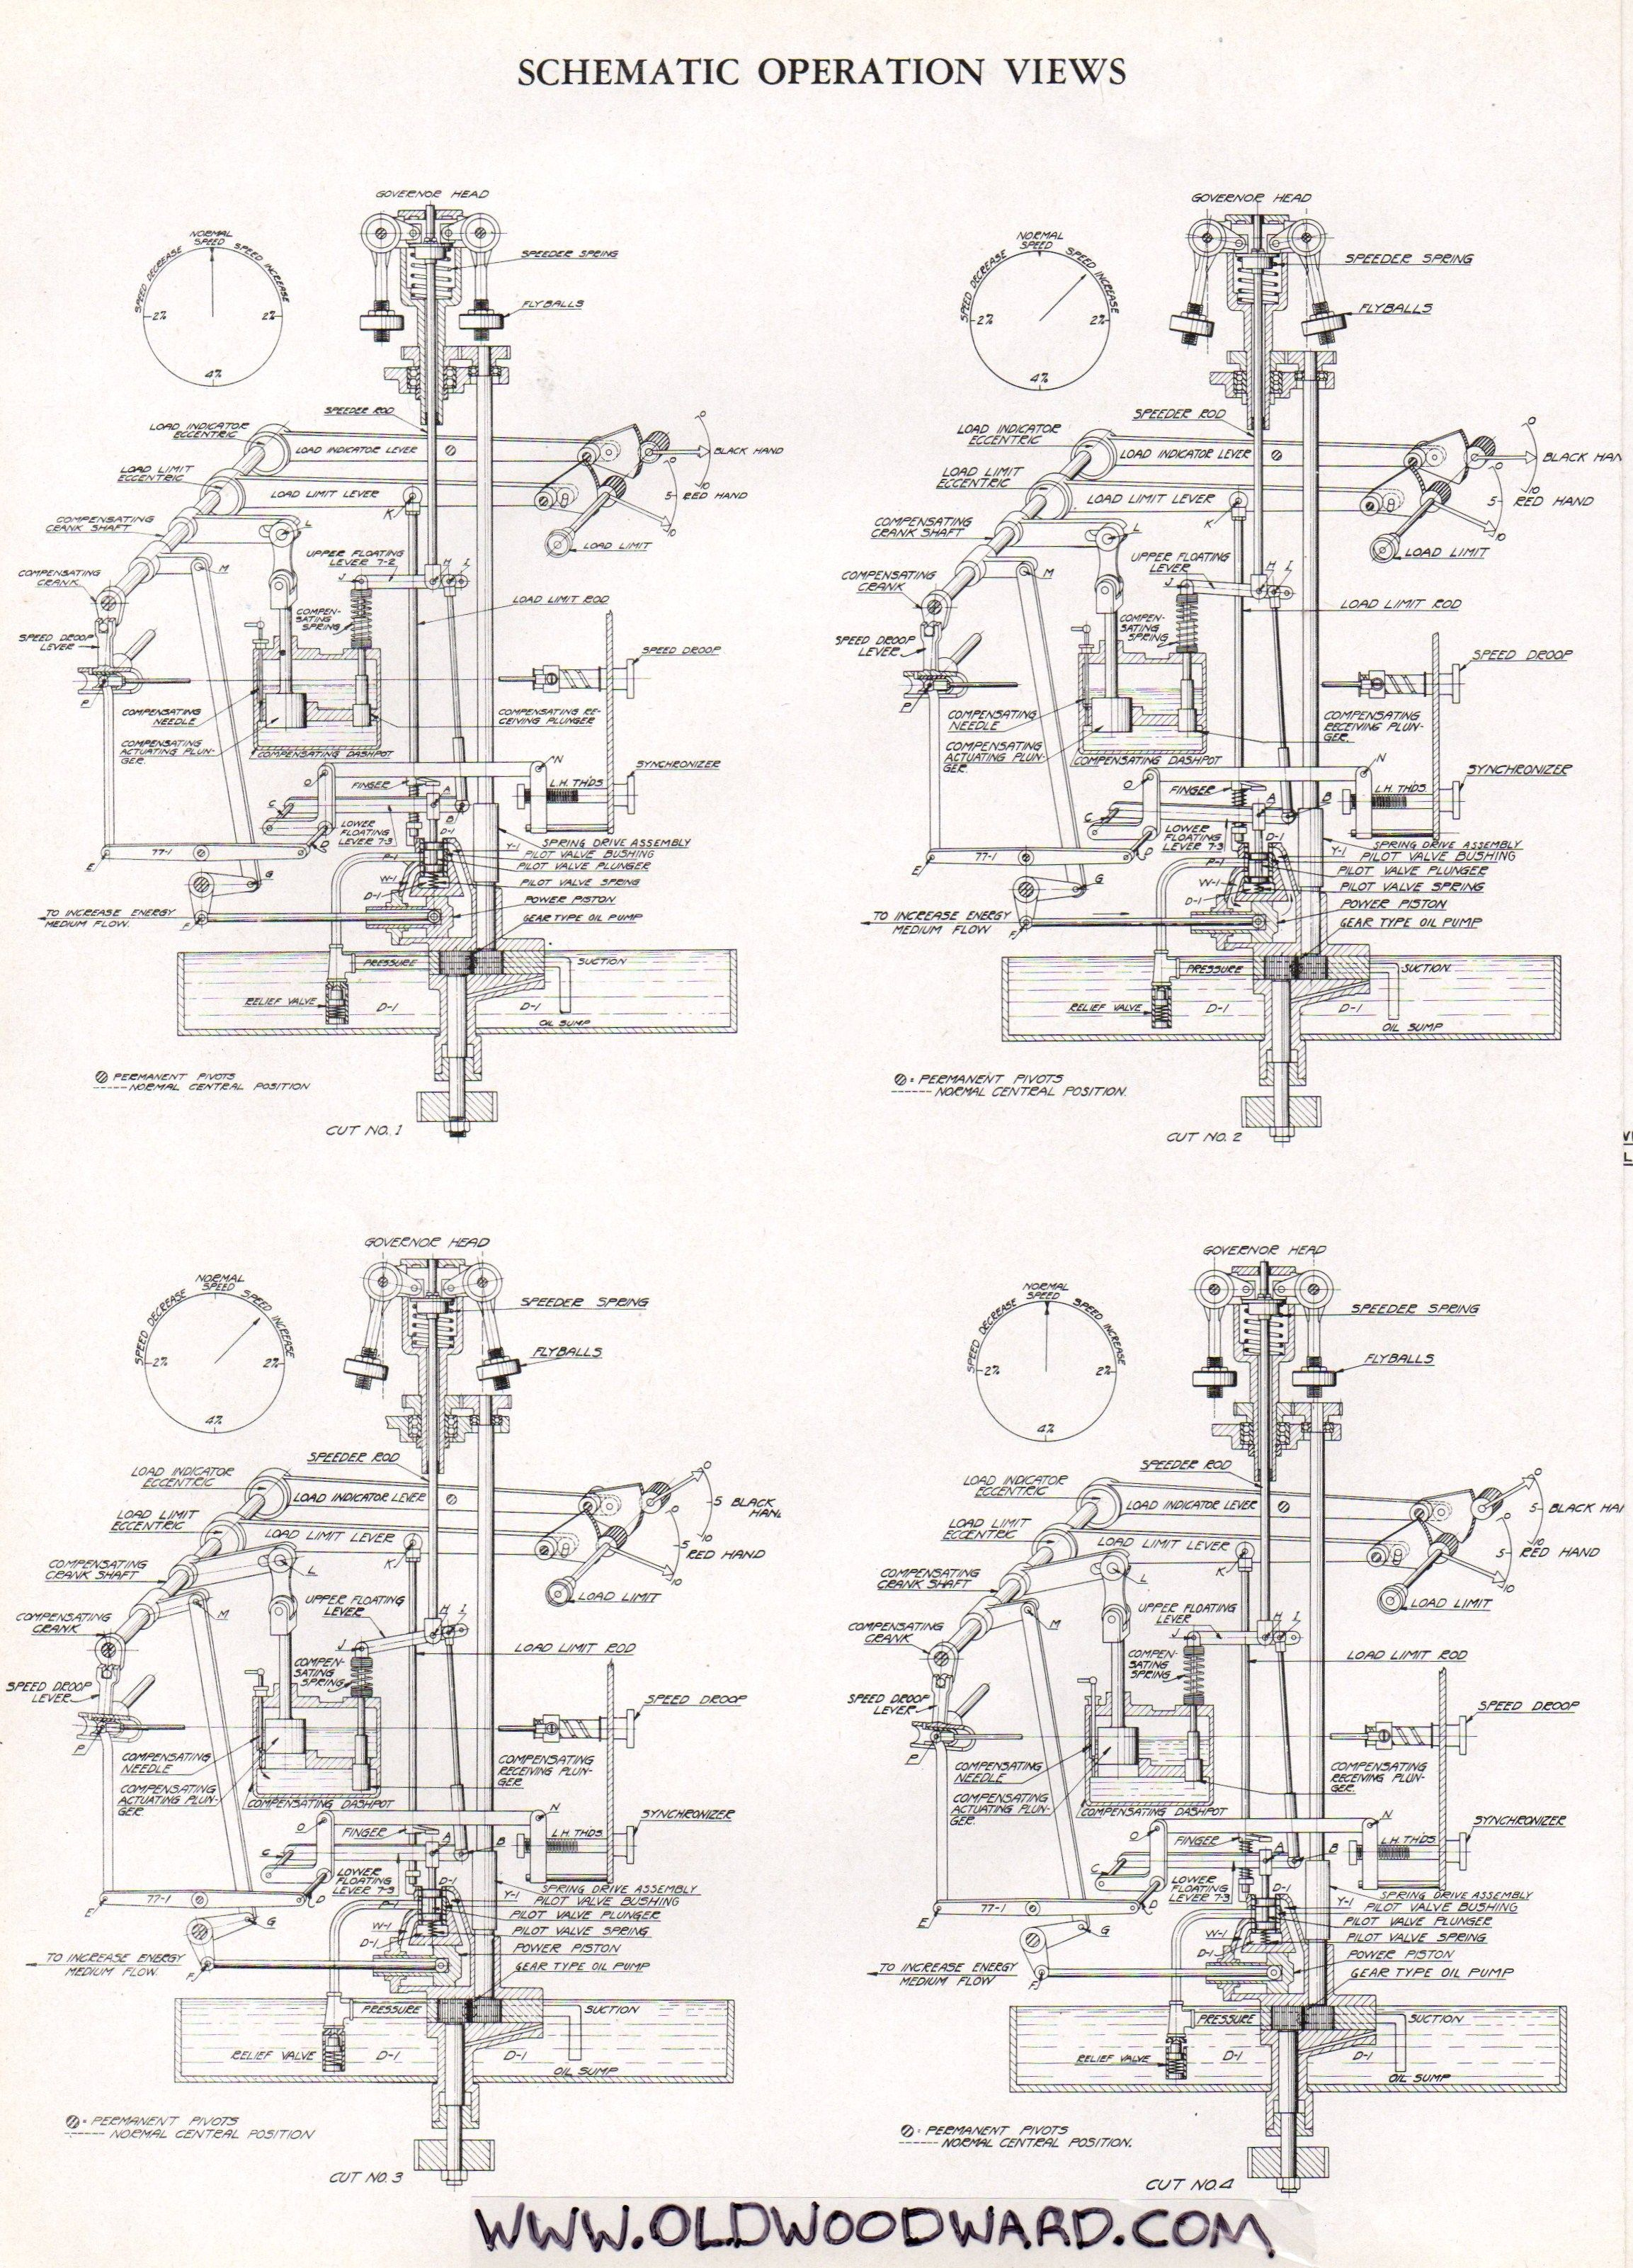 small resolution of from bulletin w 2 schematic drawing of the woodward governor company s type ic diesel engine governor patent no 2 039 507 the first customer units went to